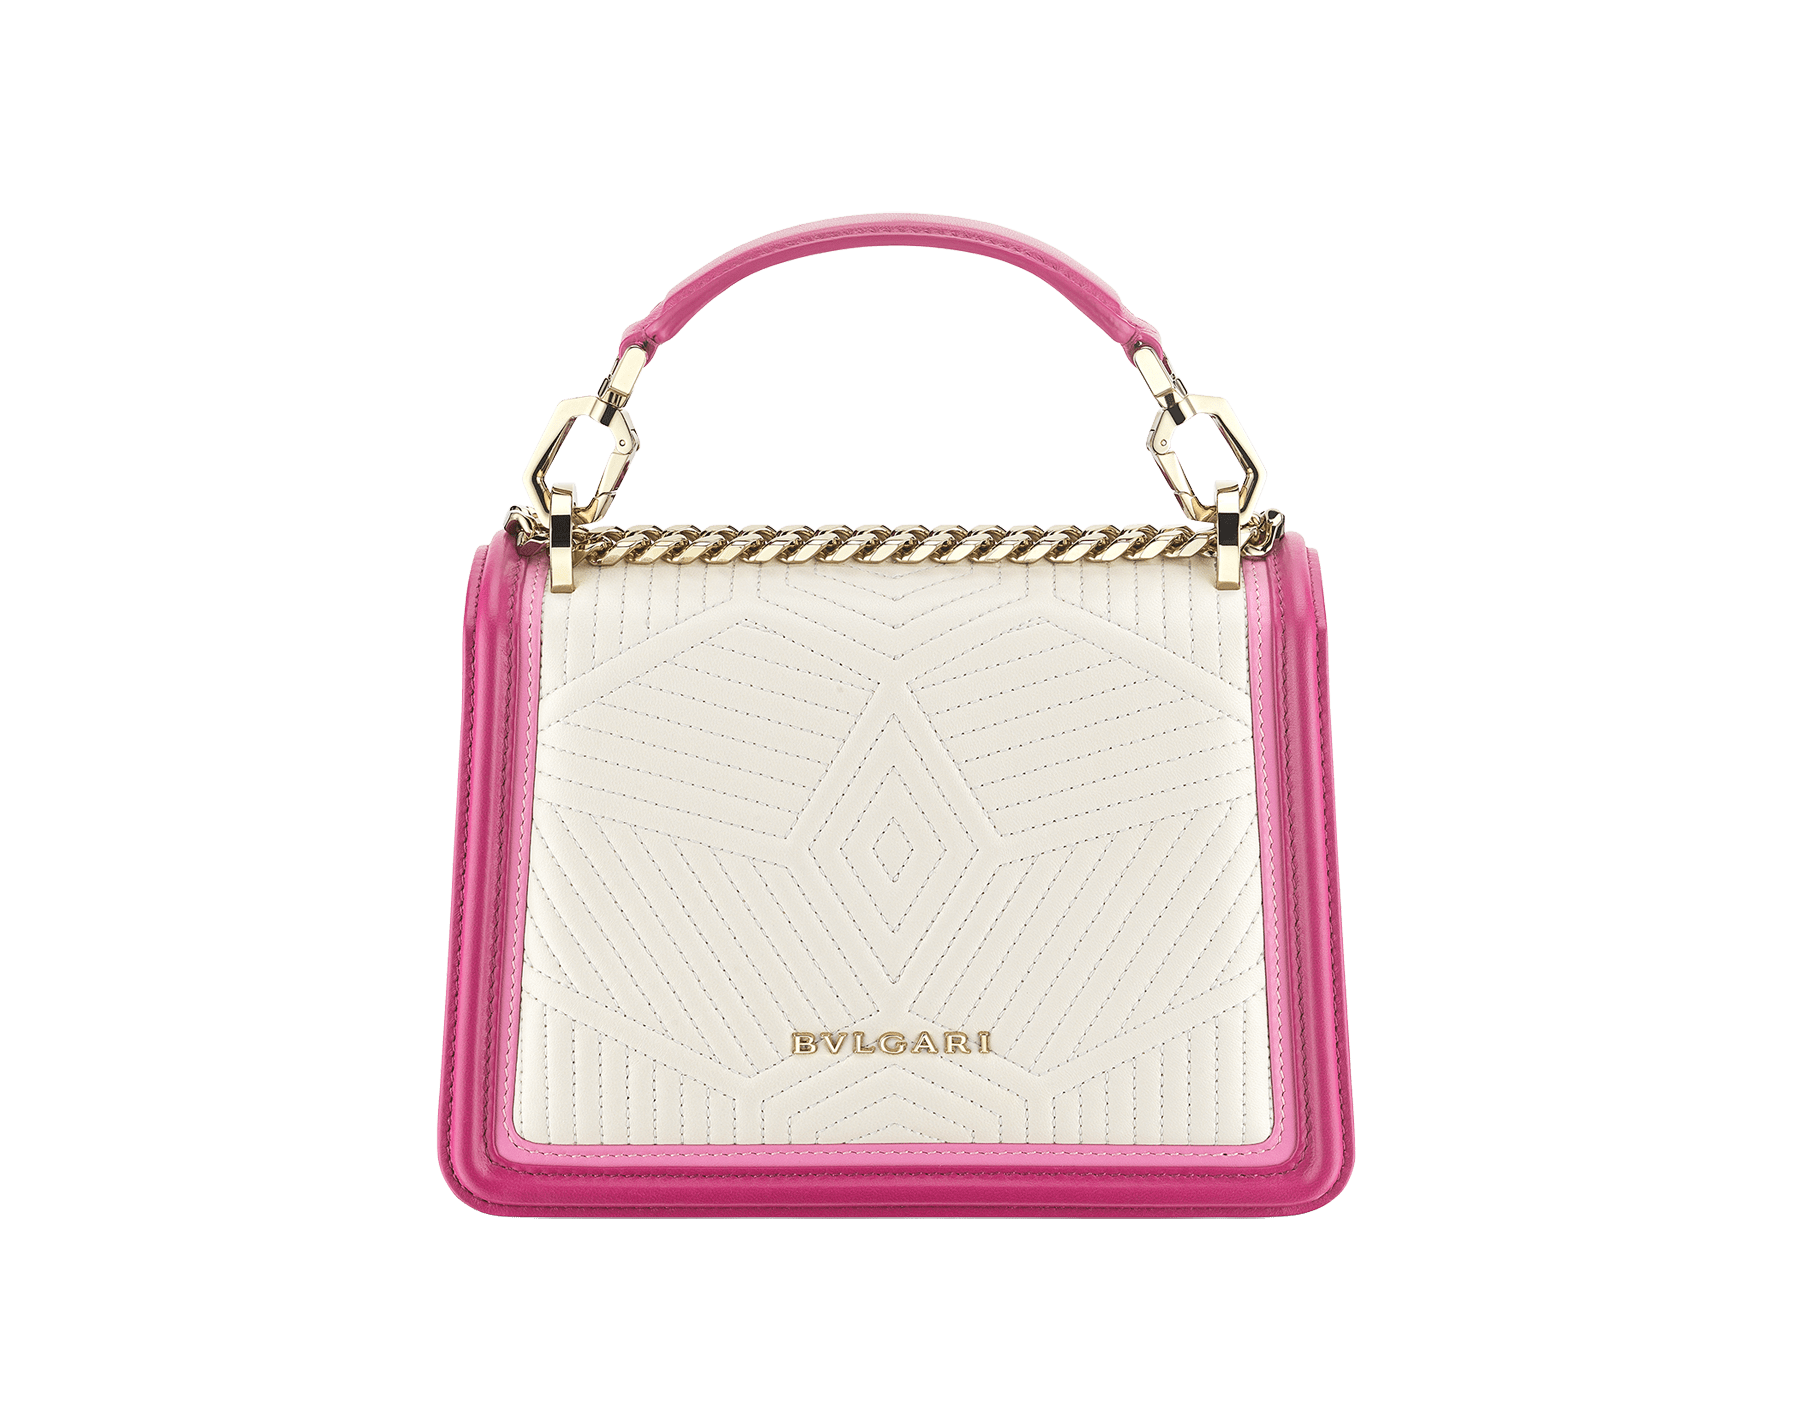 """Serpenti Diamond Blast"" top handle bag in white agate quilted nappa leather and berry tourmaline smooth calf leather frames. Iconic snakehead closure in light gold-plated brass enhanced with matte black and shiny berry tourmaline enamel and black onyx eyes. 289943 image 3"